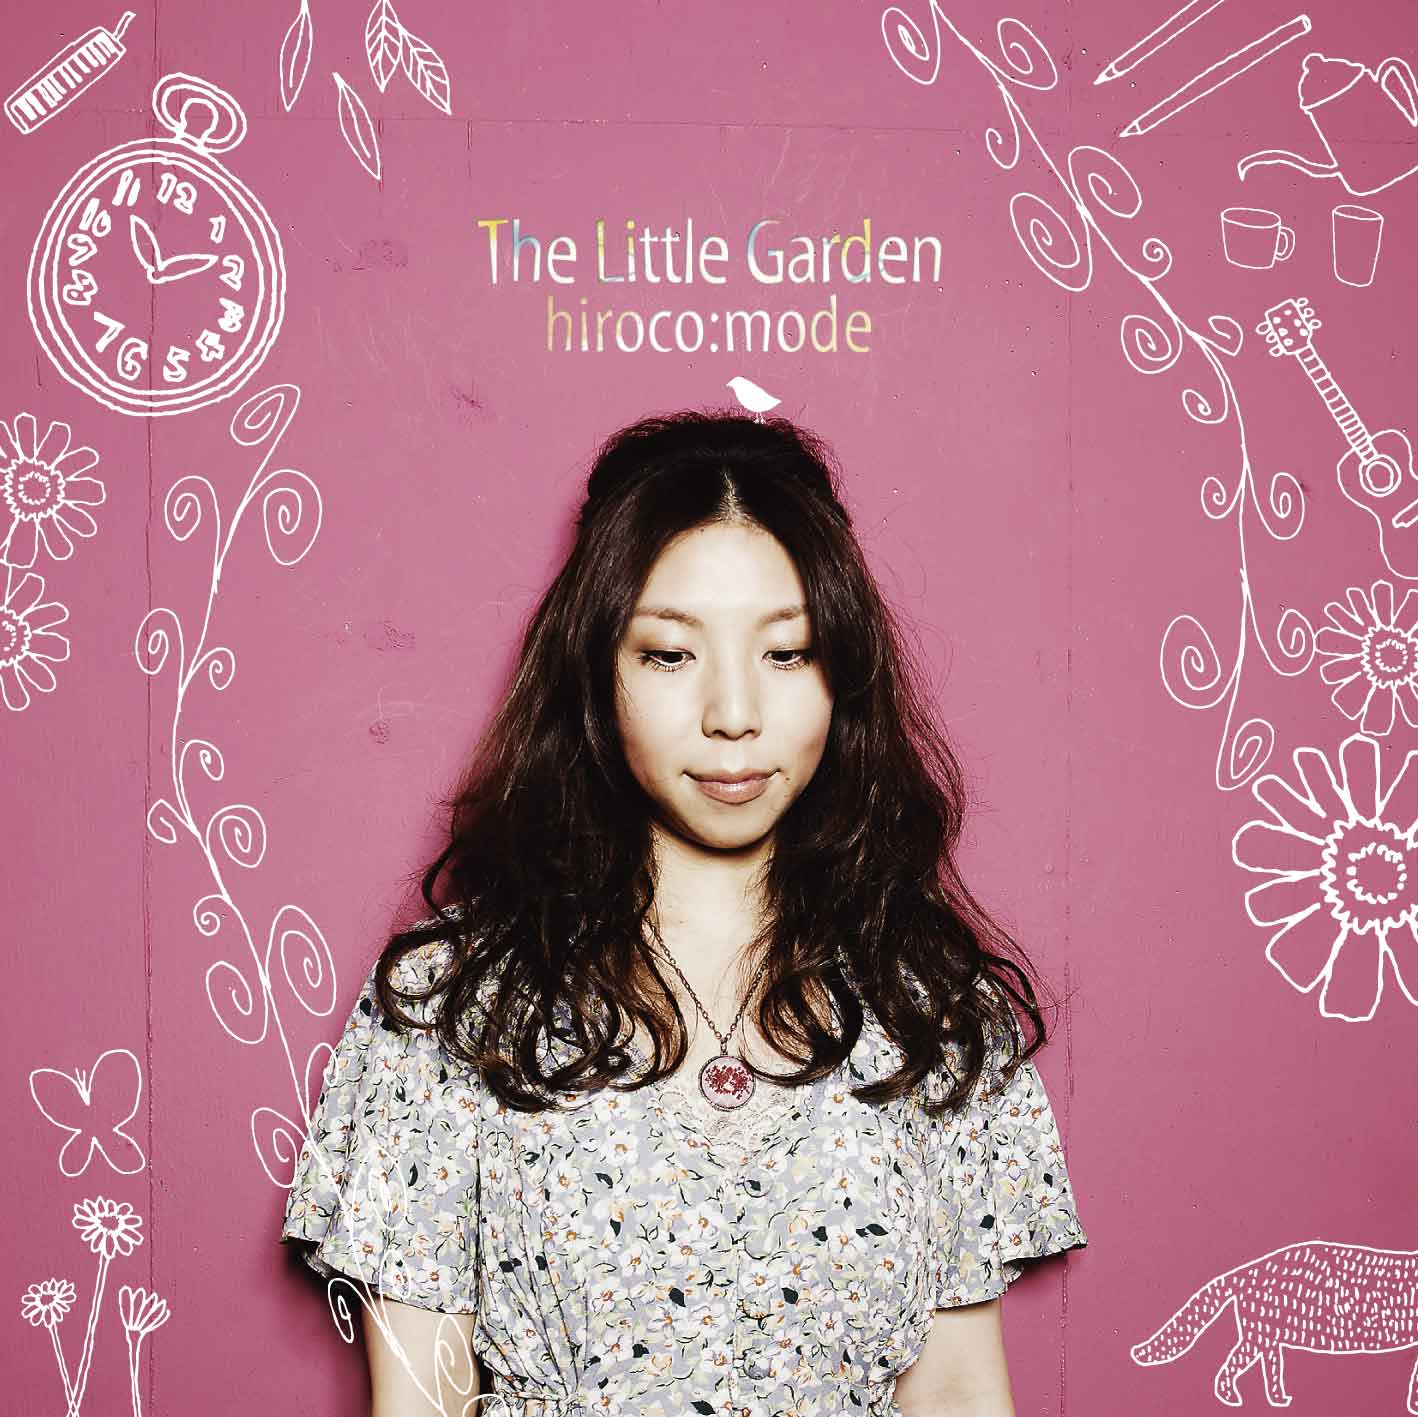 The Little Garden